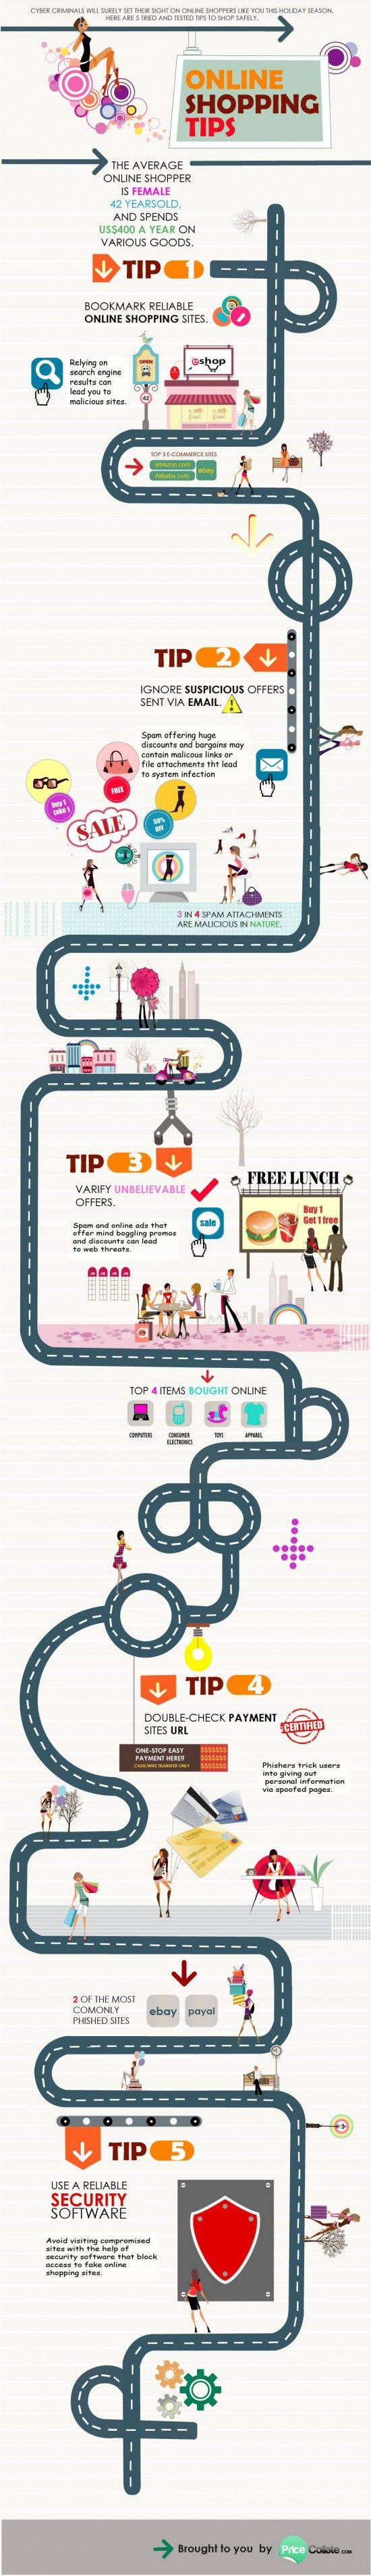 5 Tips On Shopping Online #infographic